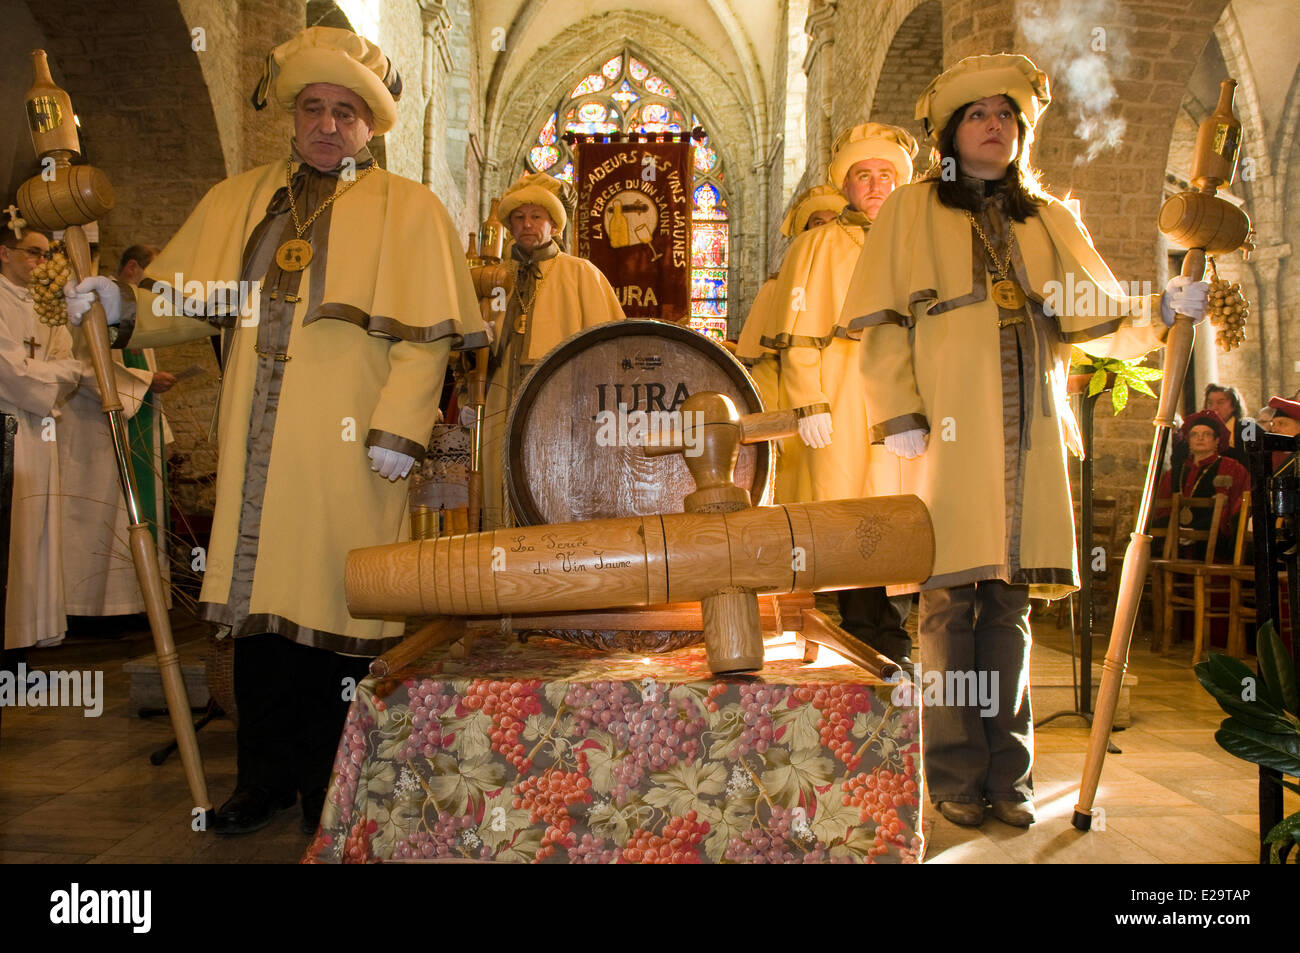 France, Jura, Arbois, breakthrough of the yellow wine, mass in the church Saint Just, ambassadors of the yellow - Stock Image